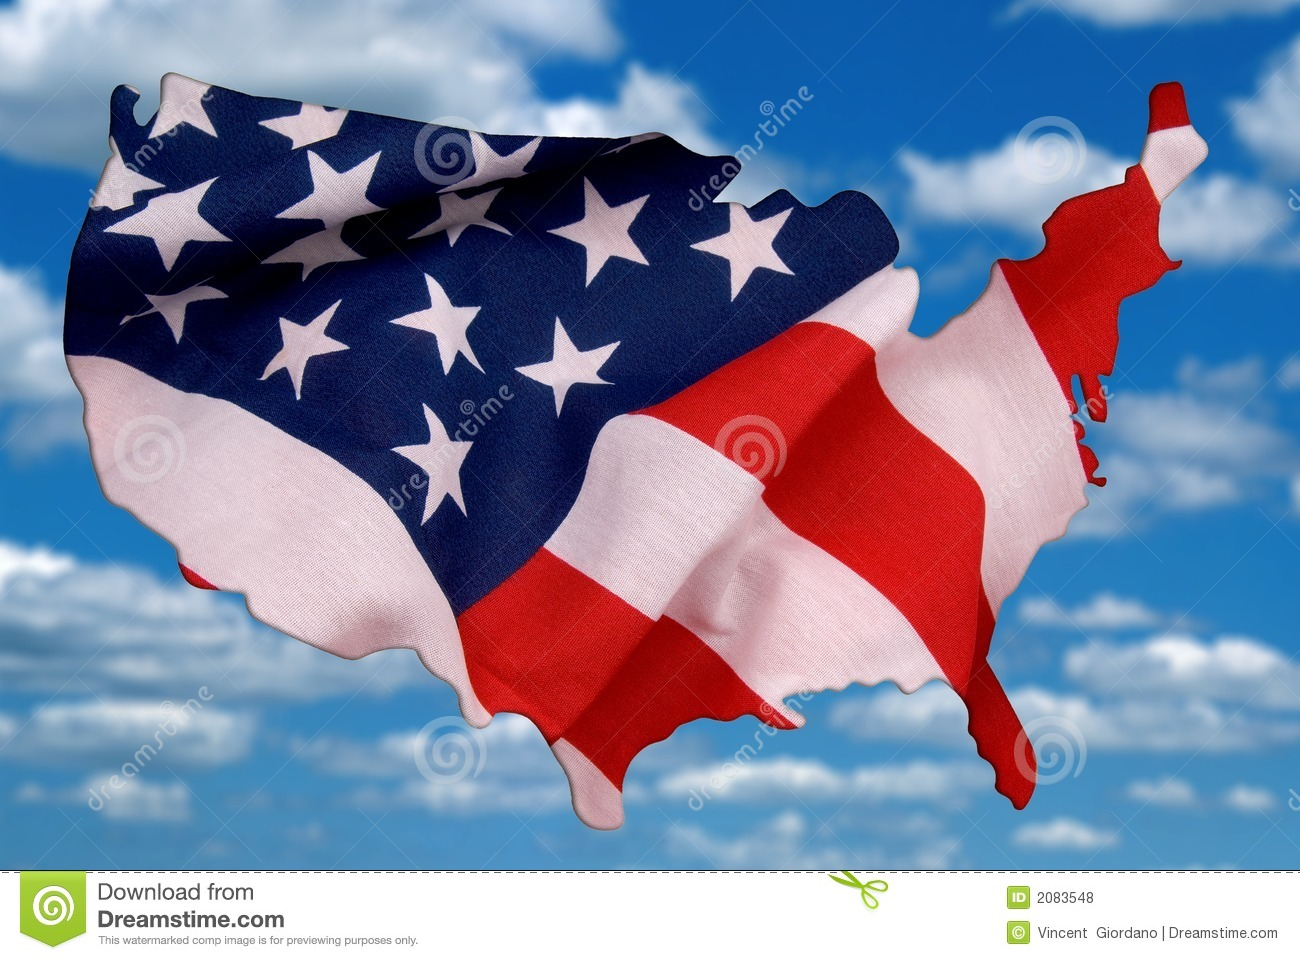 USA Map Outline With A Flag Photo Illustration Stock Photo - Image ...